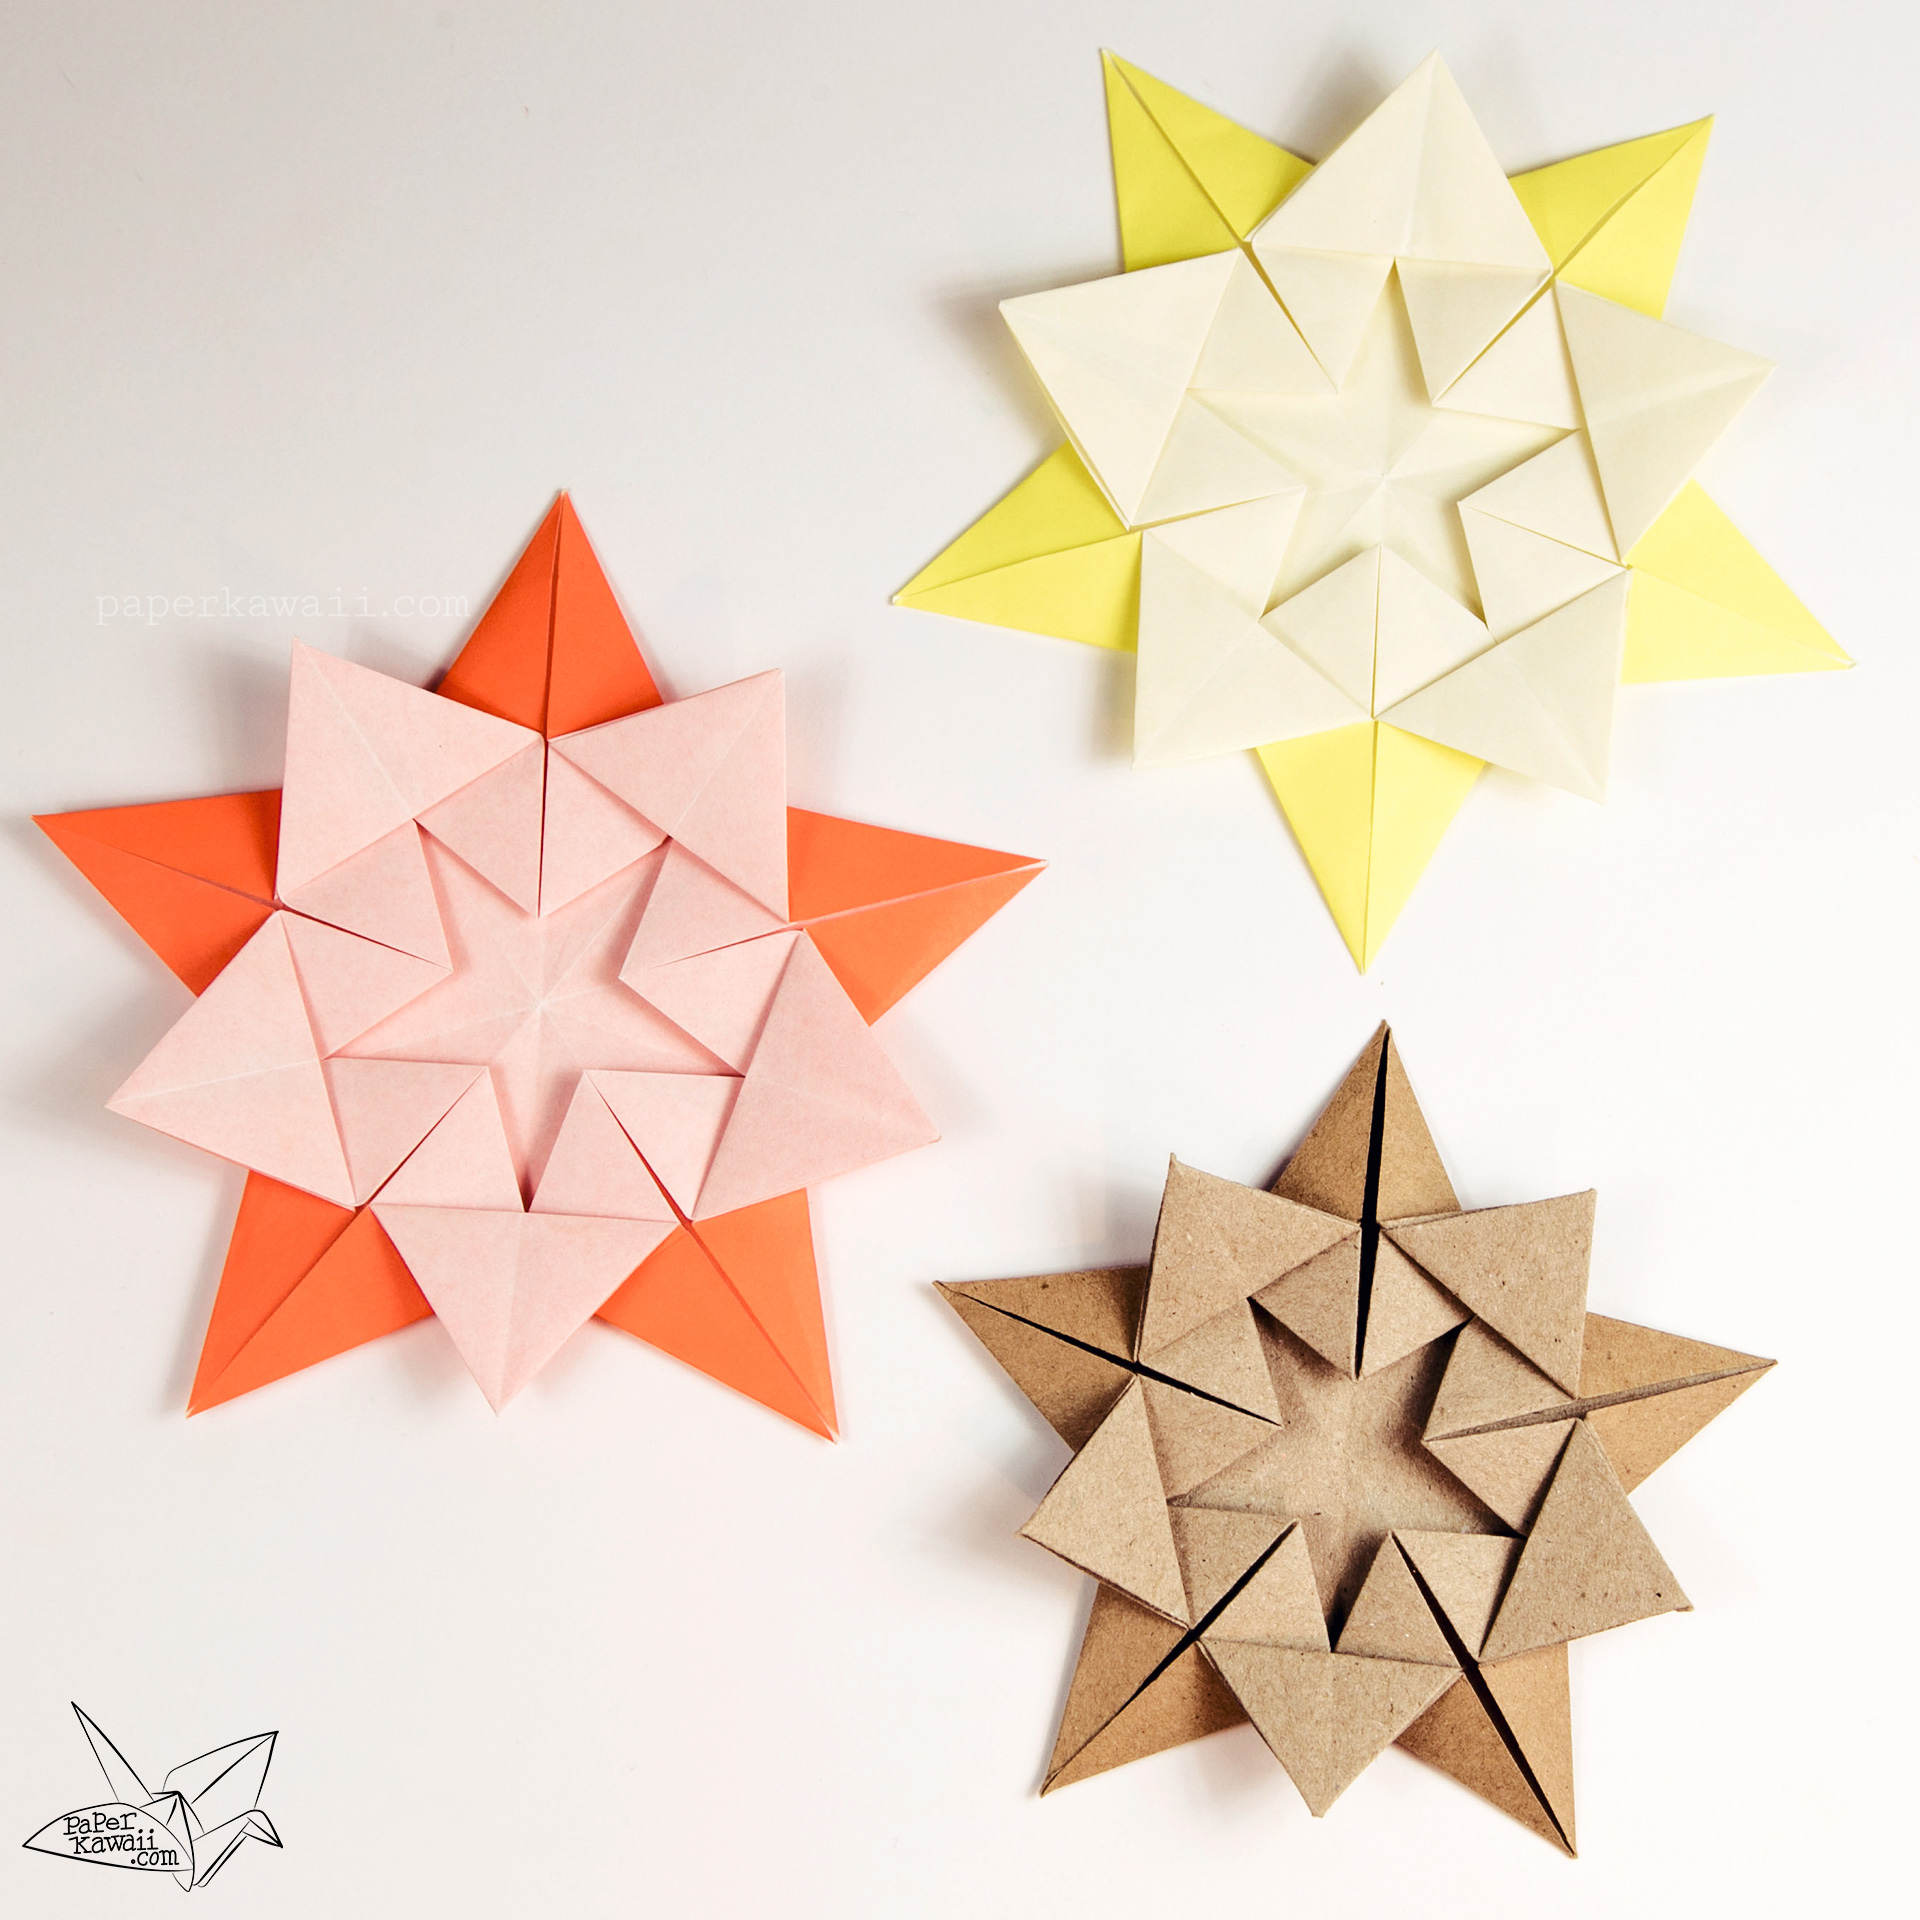 Origami 'Star Within' Tutorial - Ali Bahmani via @paper_kawaii